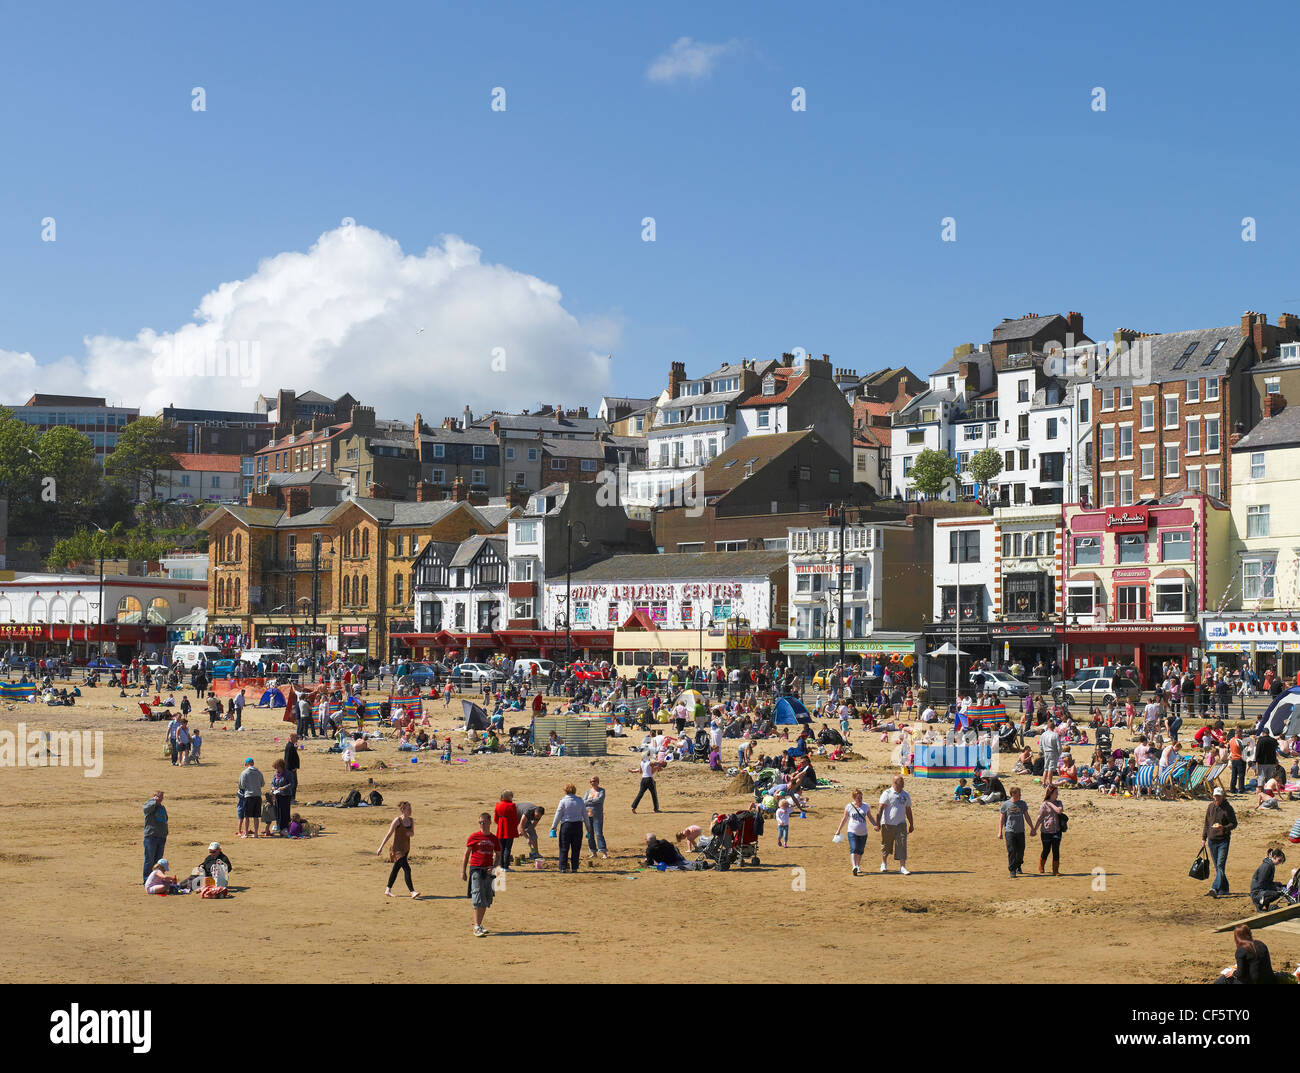 Holidaymakers enjoying the sunshine on South Bay beach. - Stock Image